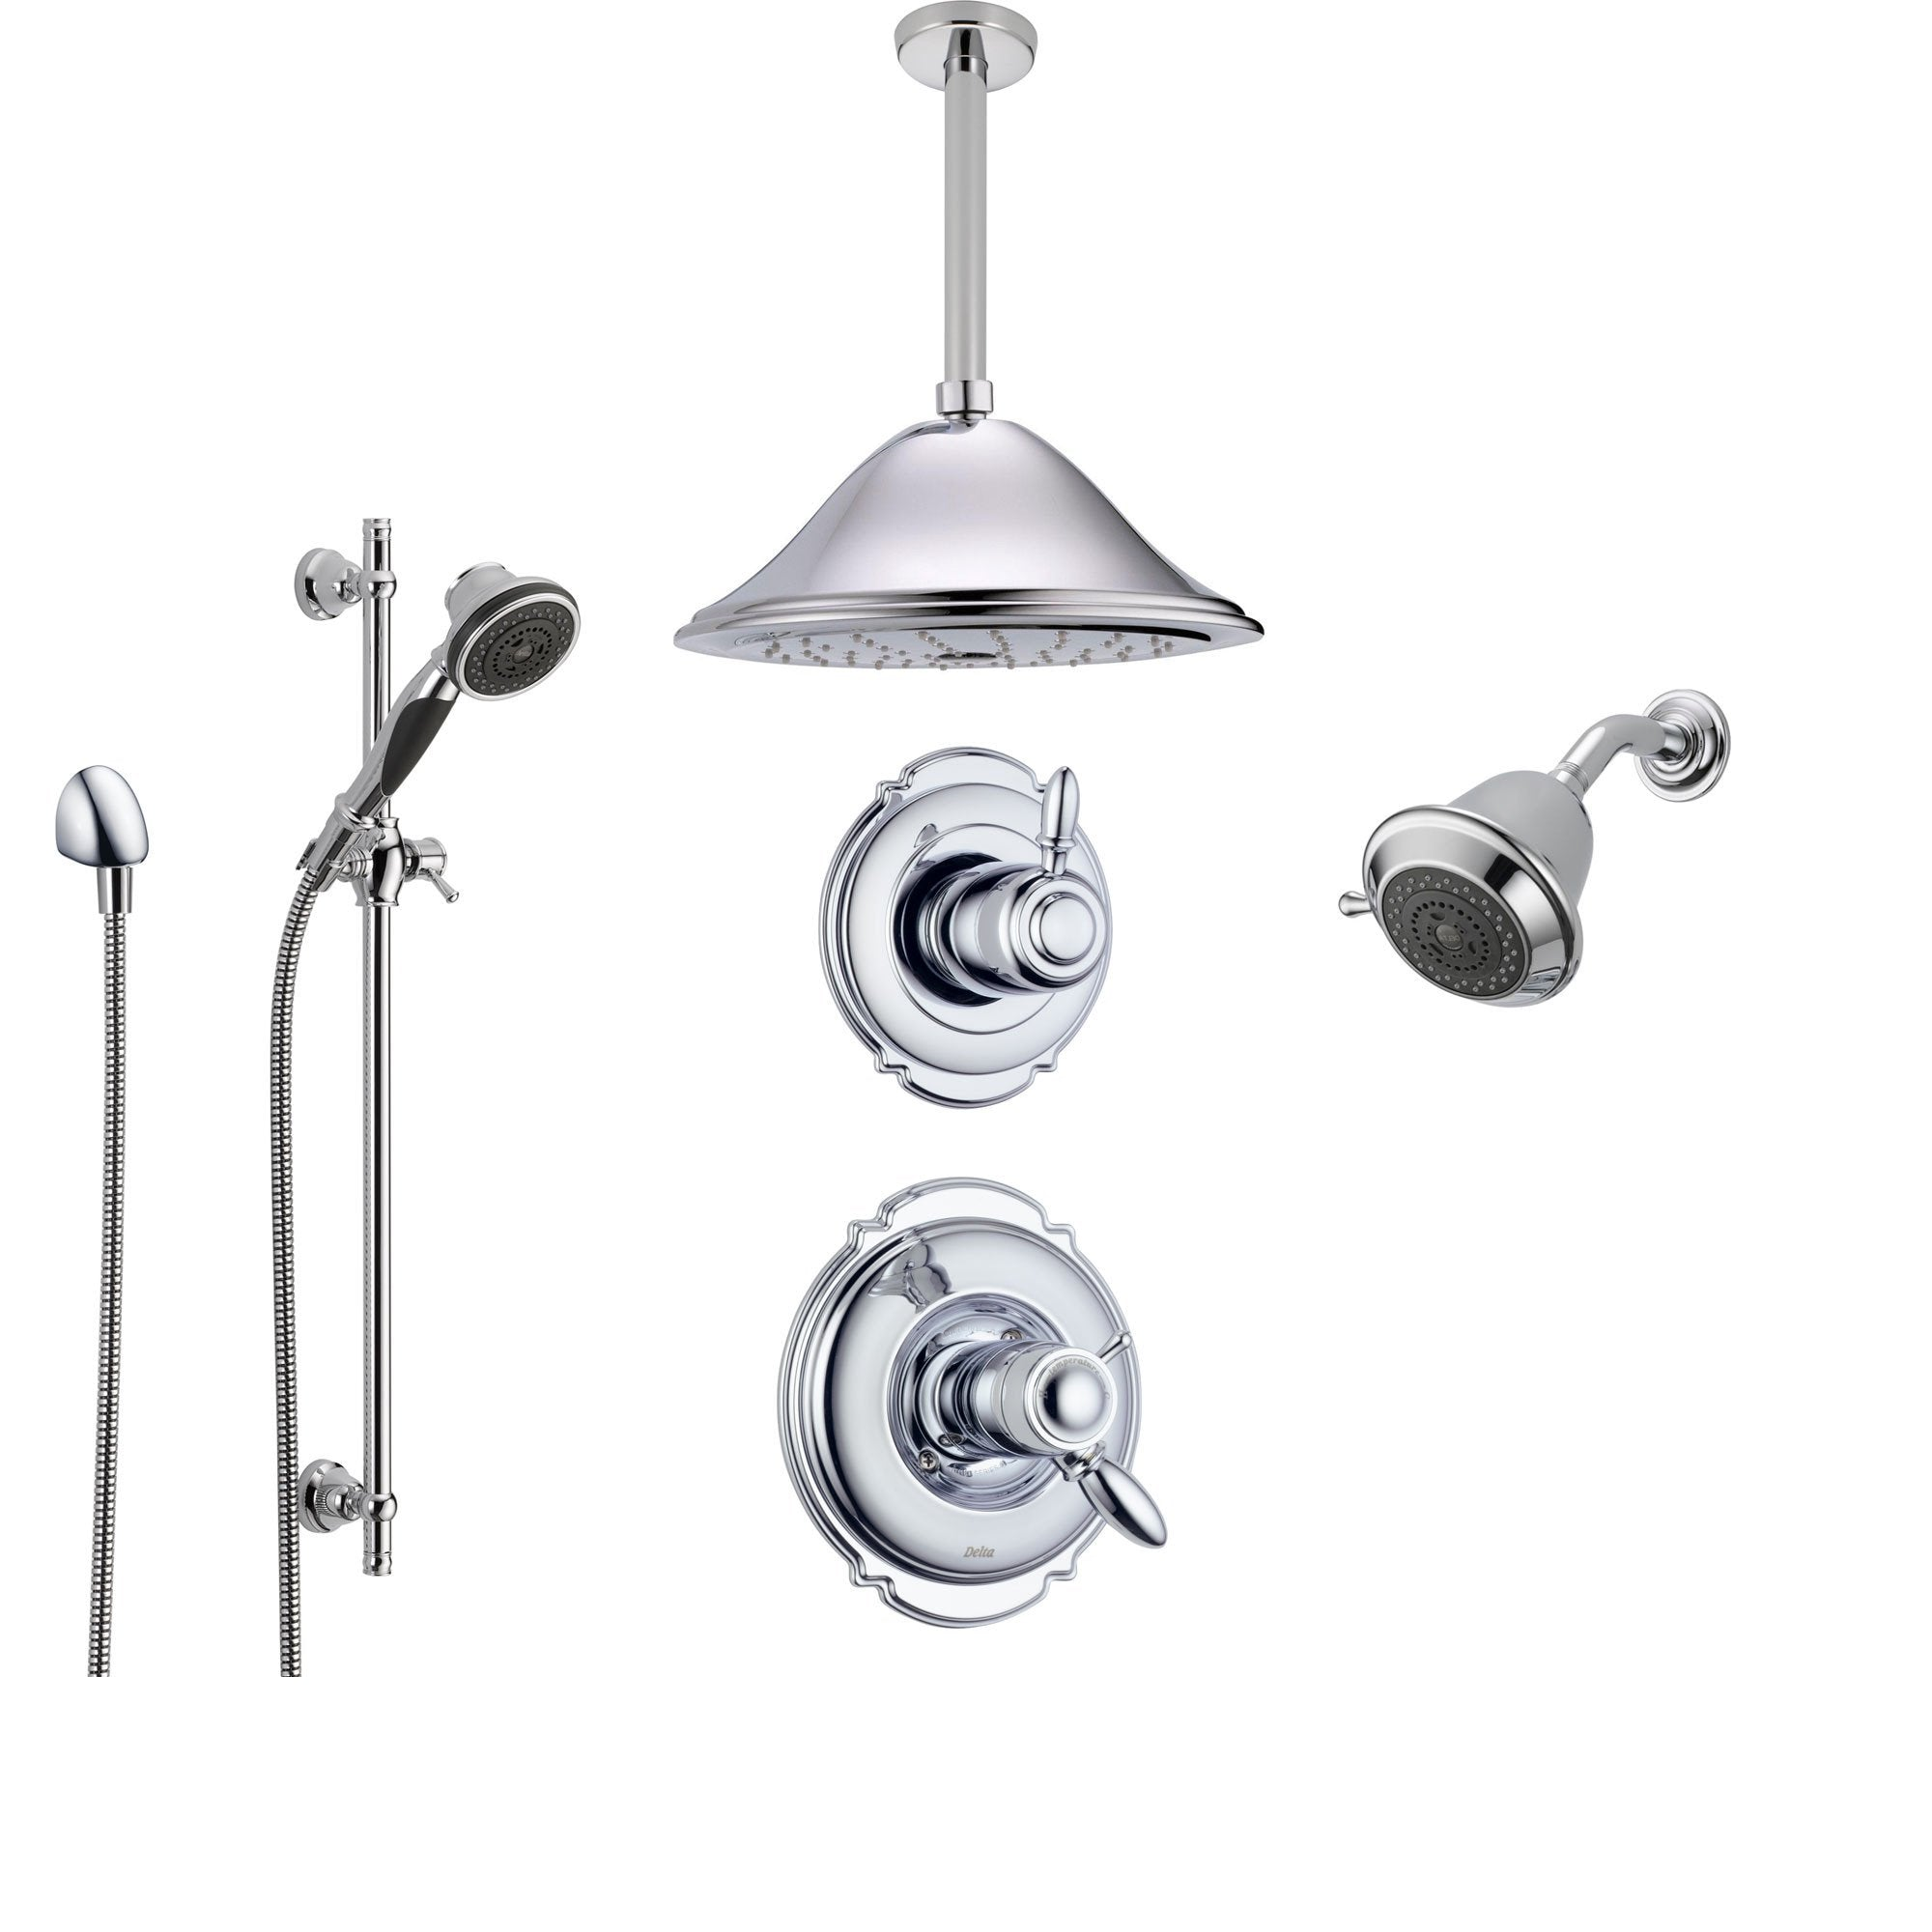 Delta Victorian Chrome Shower System With Thermostatic Shower Handle,  6 Setting Diverter, Large